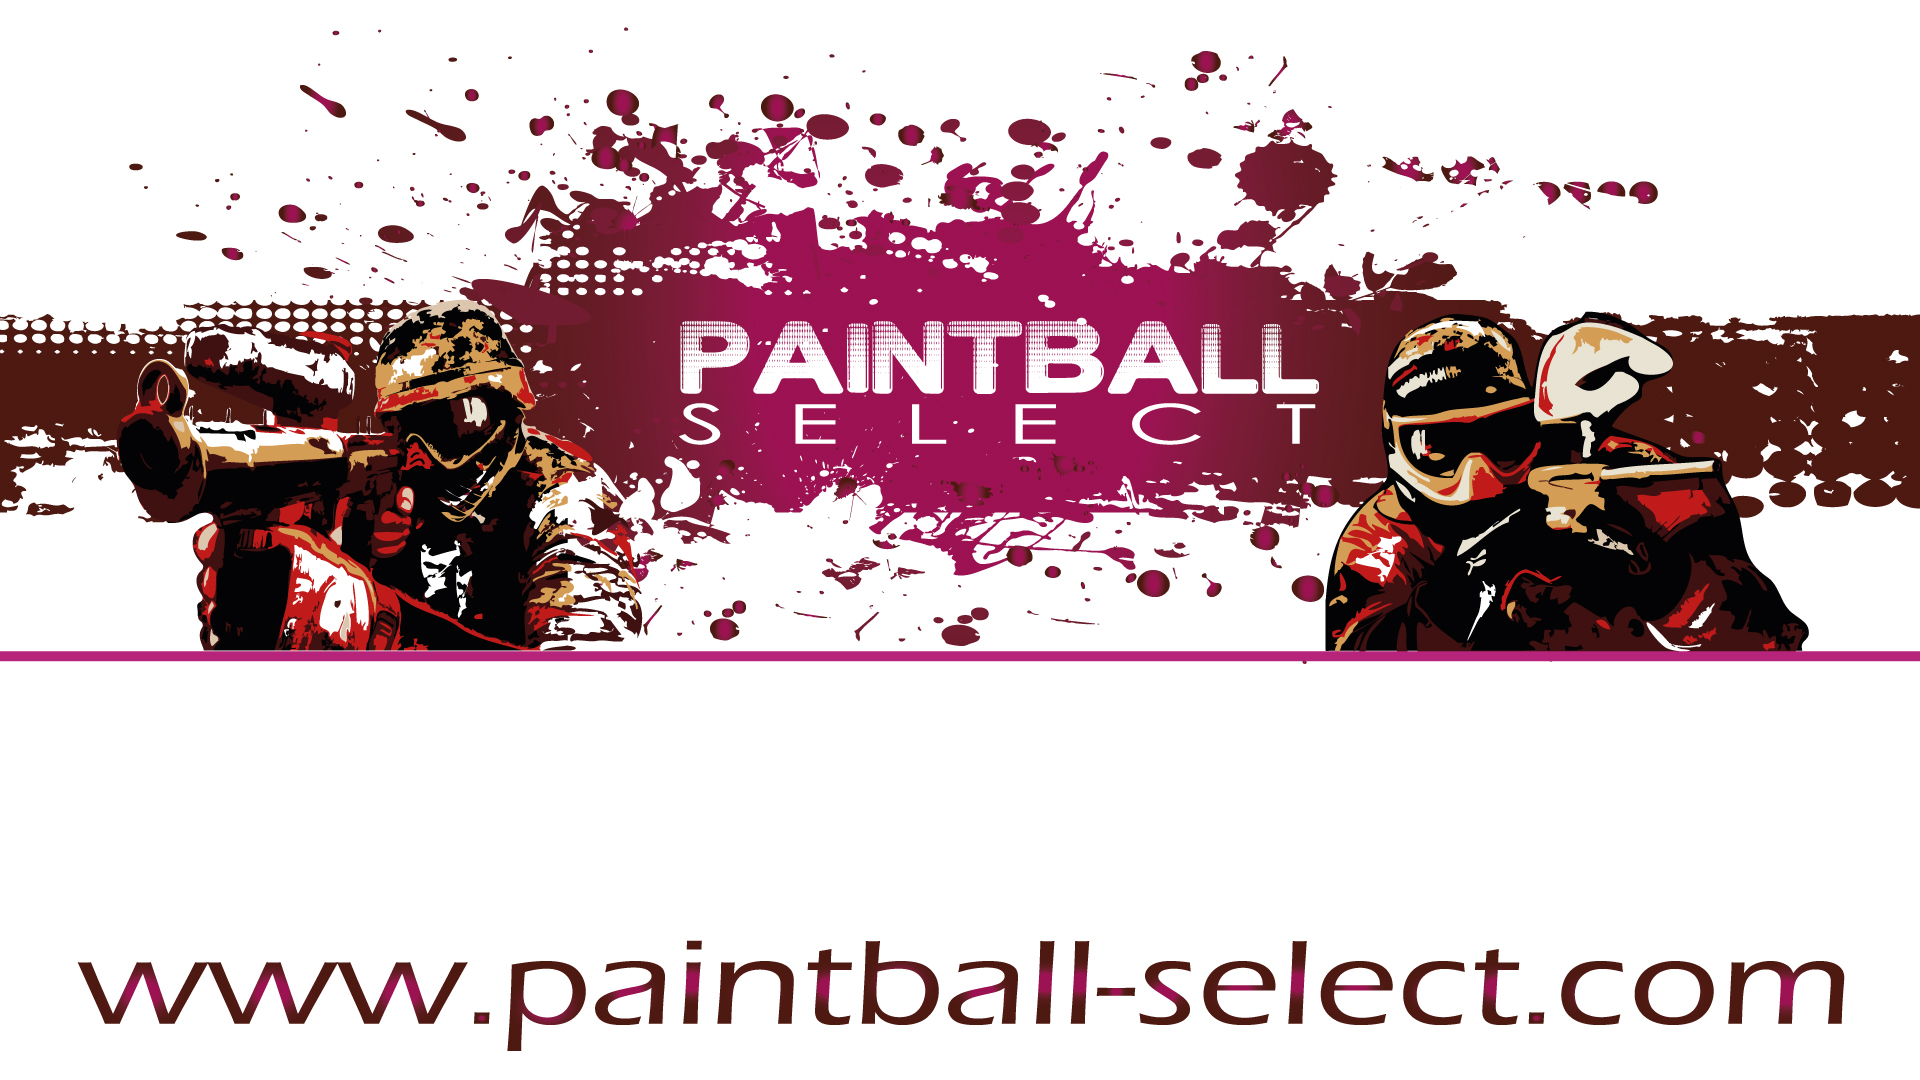 Fond d'écran White Paintball Select